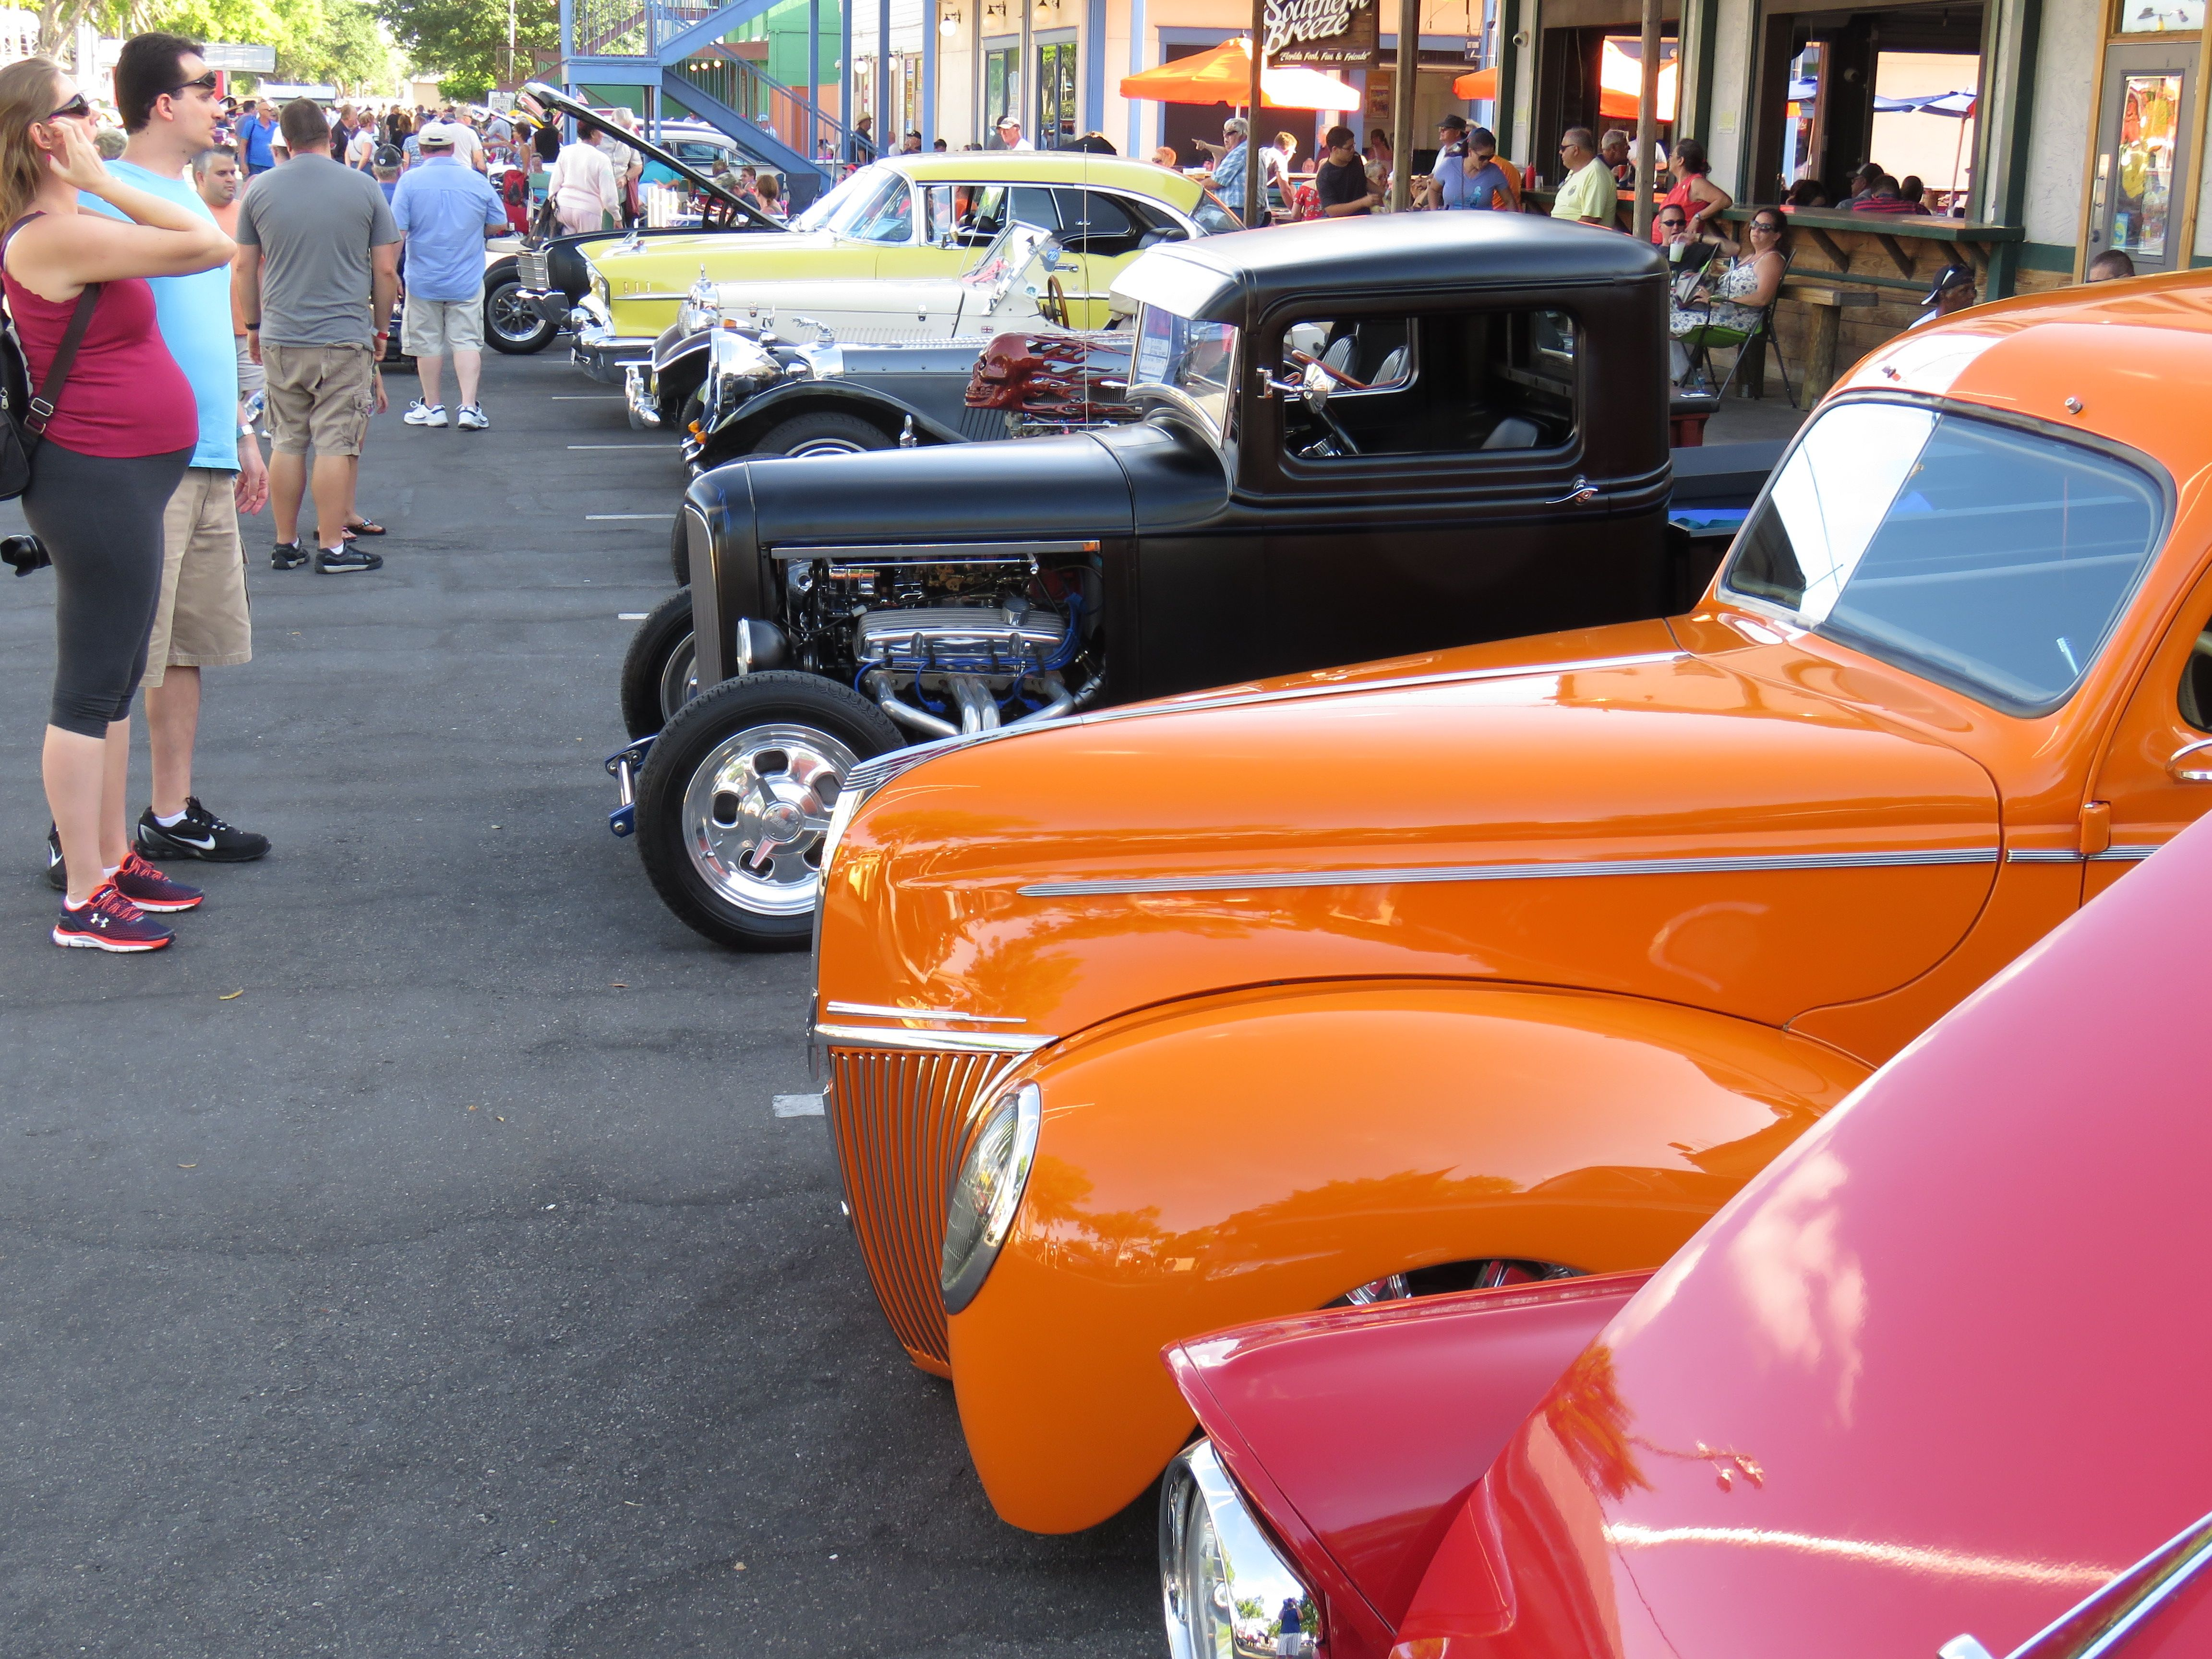 Saturday Nite Classic Car Cruise Old Town USA Classic